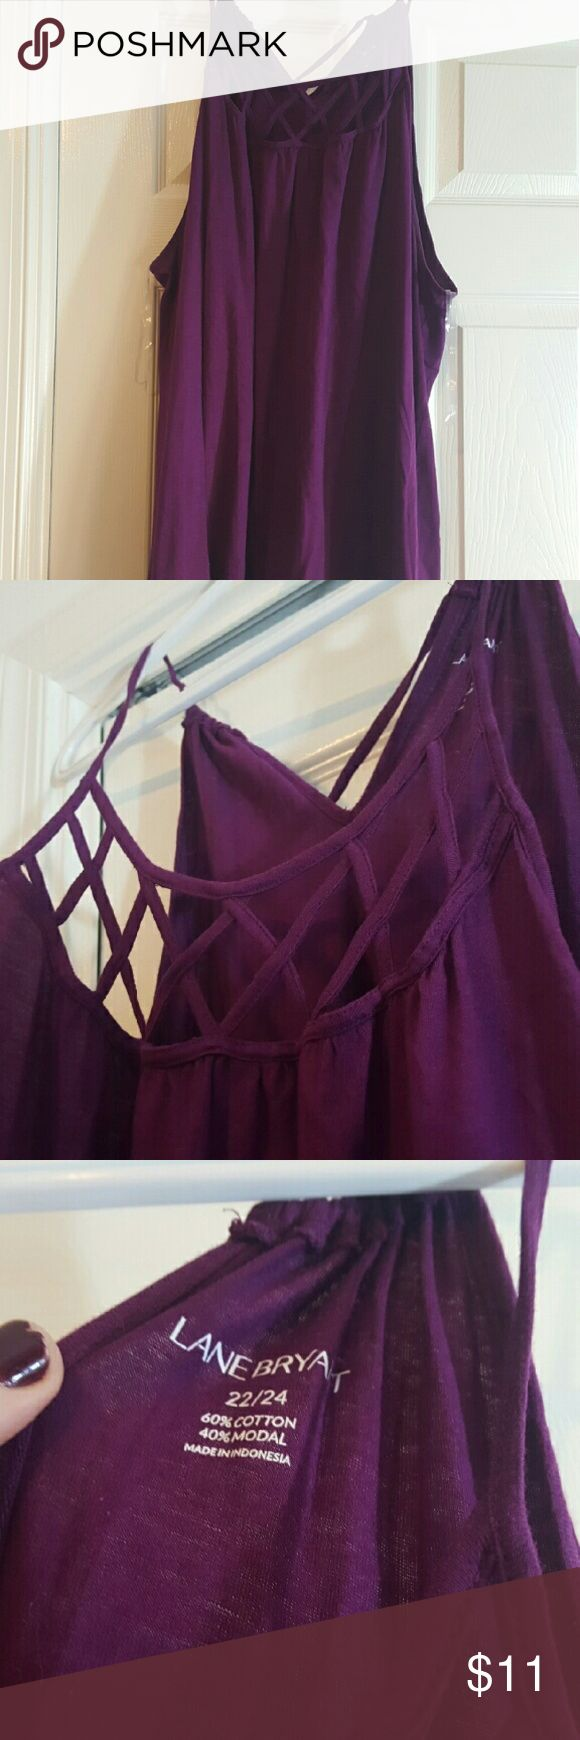 Lane Bryant Purple Strappy Tank top Size: 22/24 Color: Purple Lane Bryant Purple Strappy Tank top. Has adjustable tie in back with beads on ends. Moderately worn. Lane Bryant Tops Tank Tops